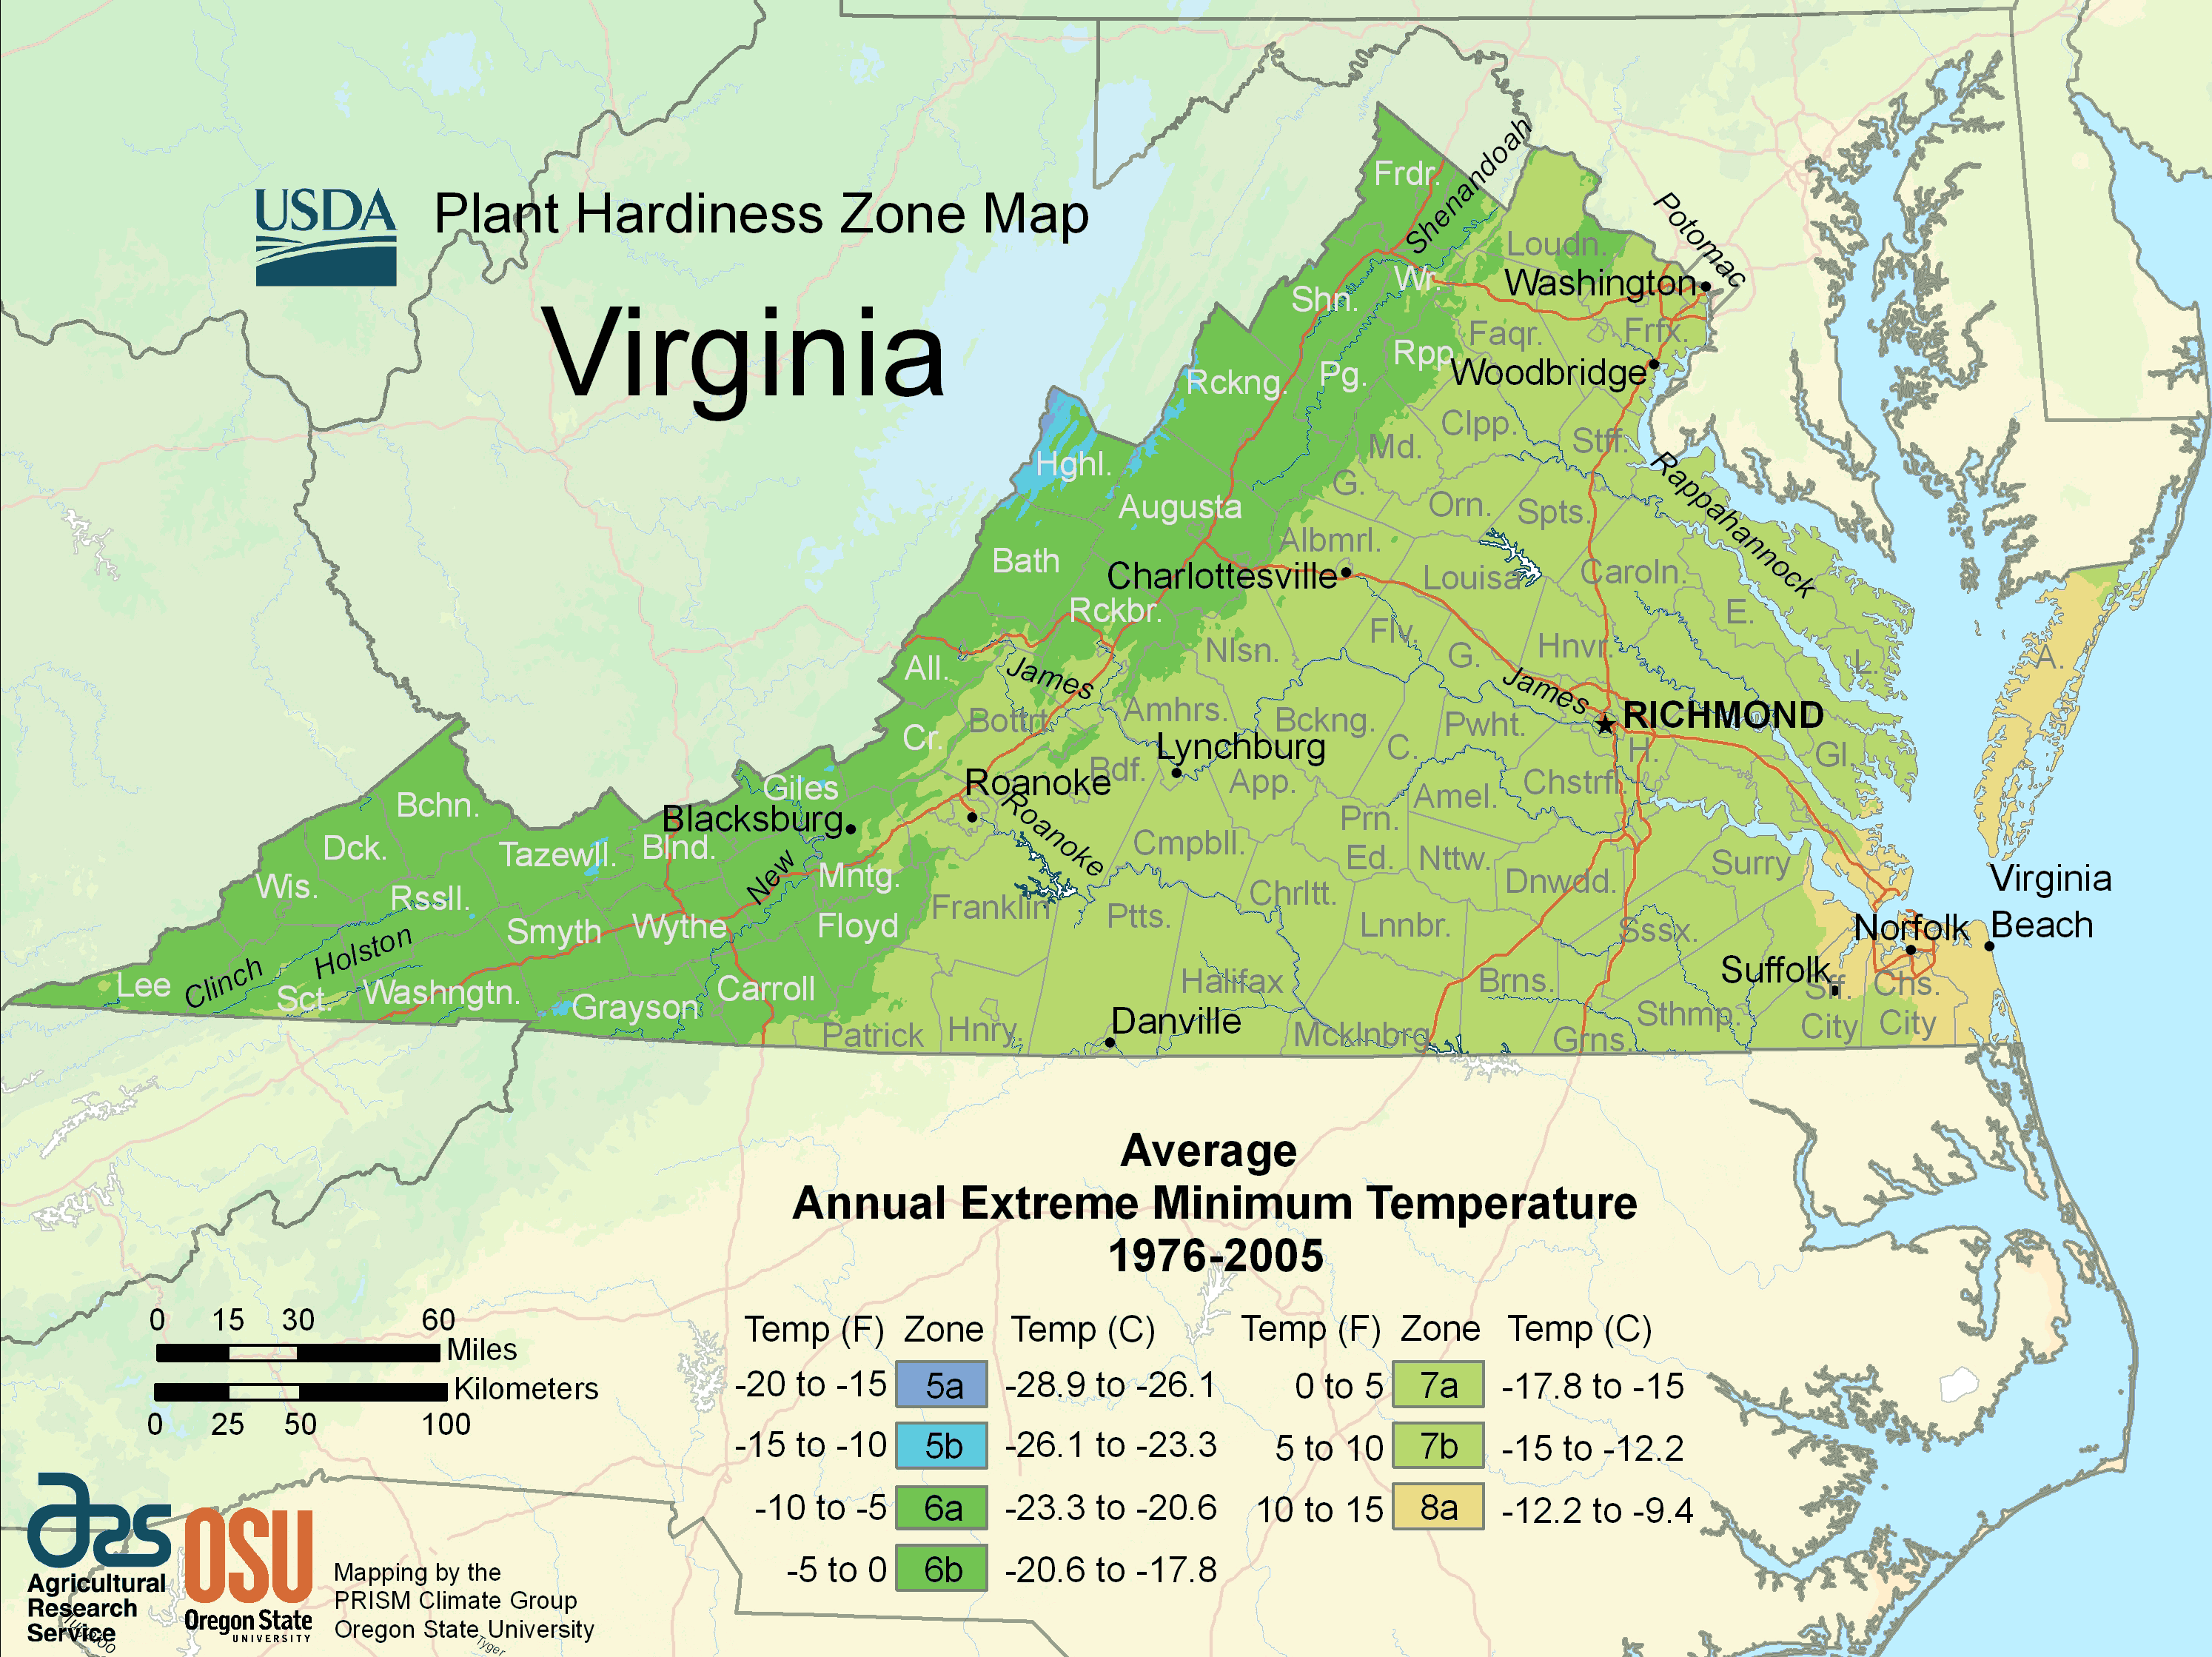 Relief Map Of Virginia.Virginia Plant Hardiness Zone Map Mapsof Net